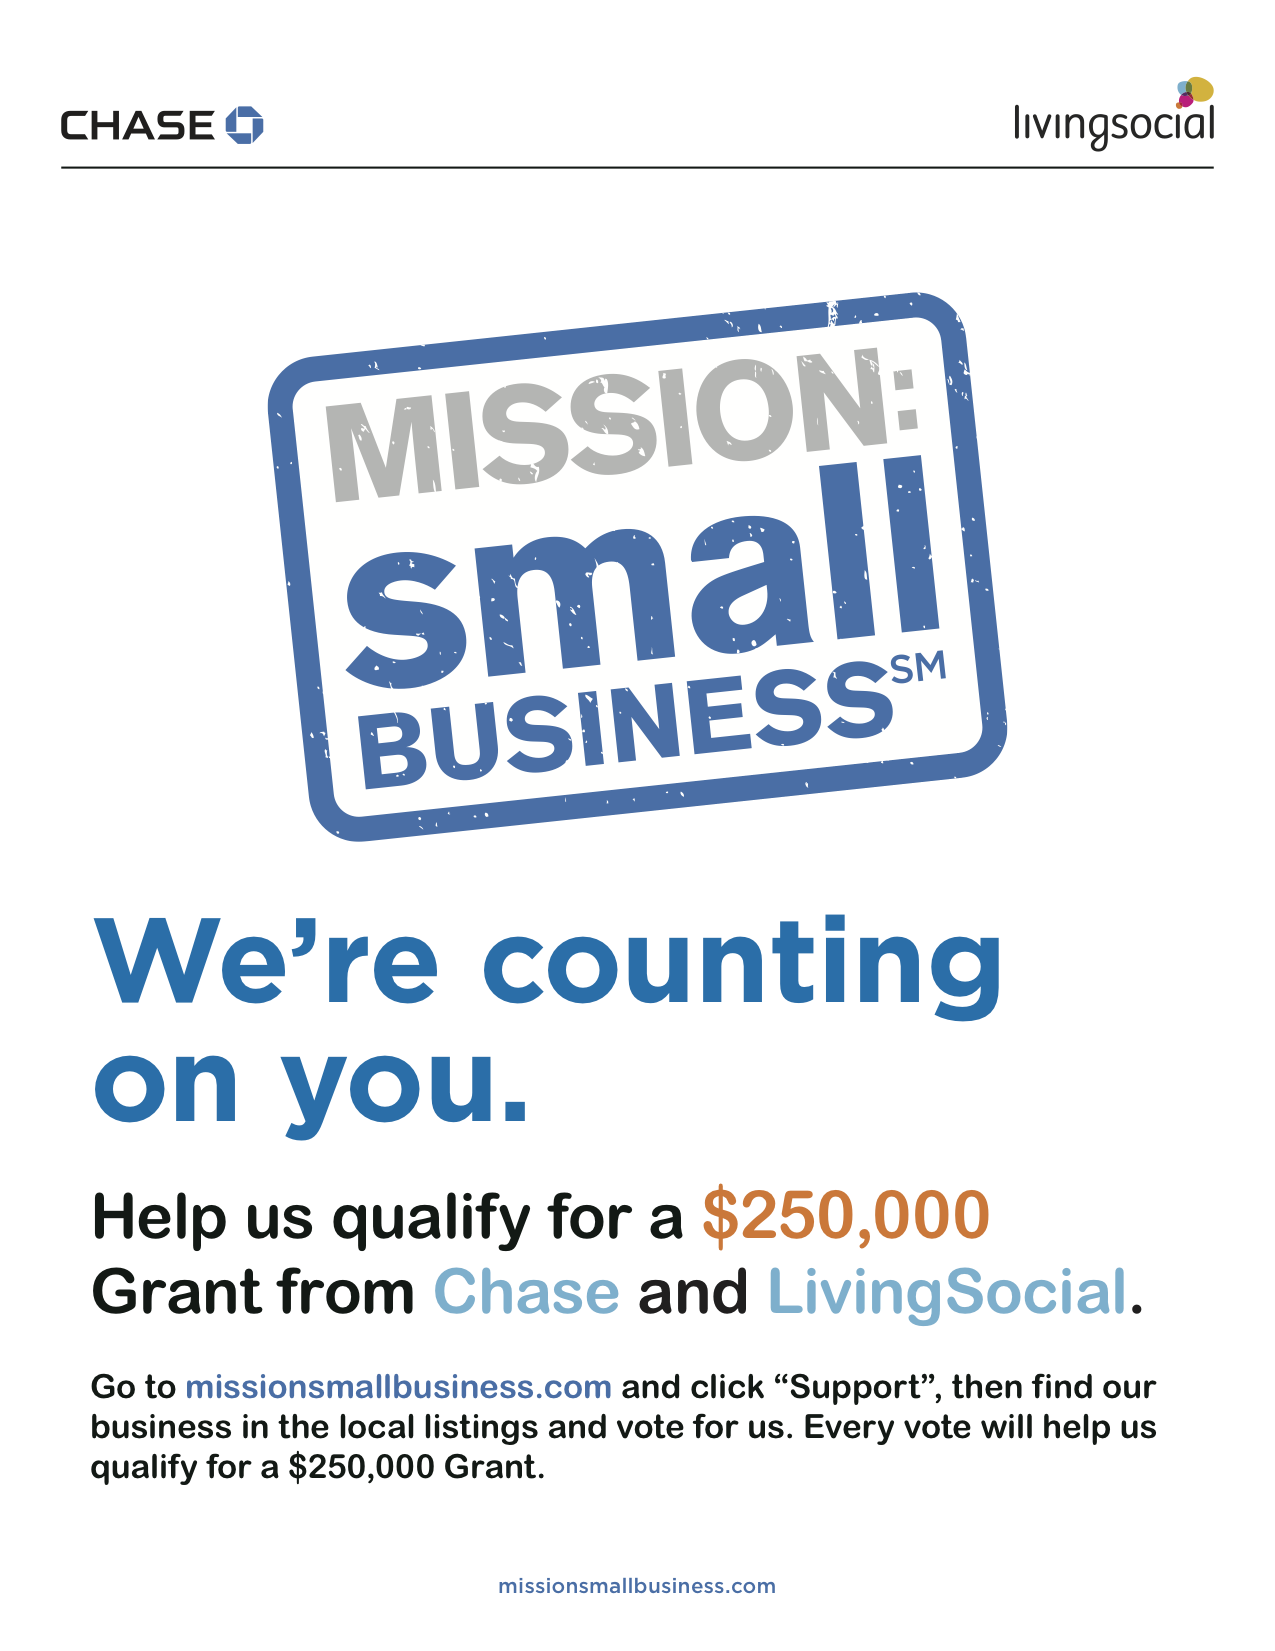 Lovely needs your vote! The gift of this grant from Chase and Living Social would enable Lovely and Lovely, too to grow beyond our dreams. Thank you for your support! just click here to find us and vote! https://www.missionsmallbusiness.com/